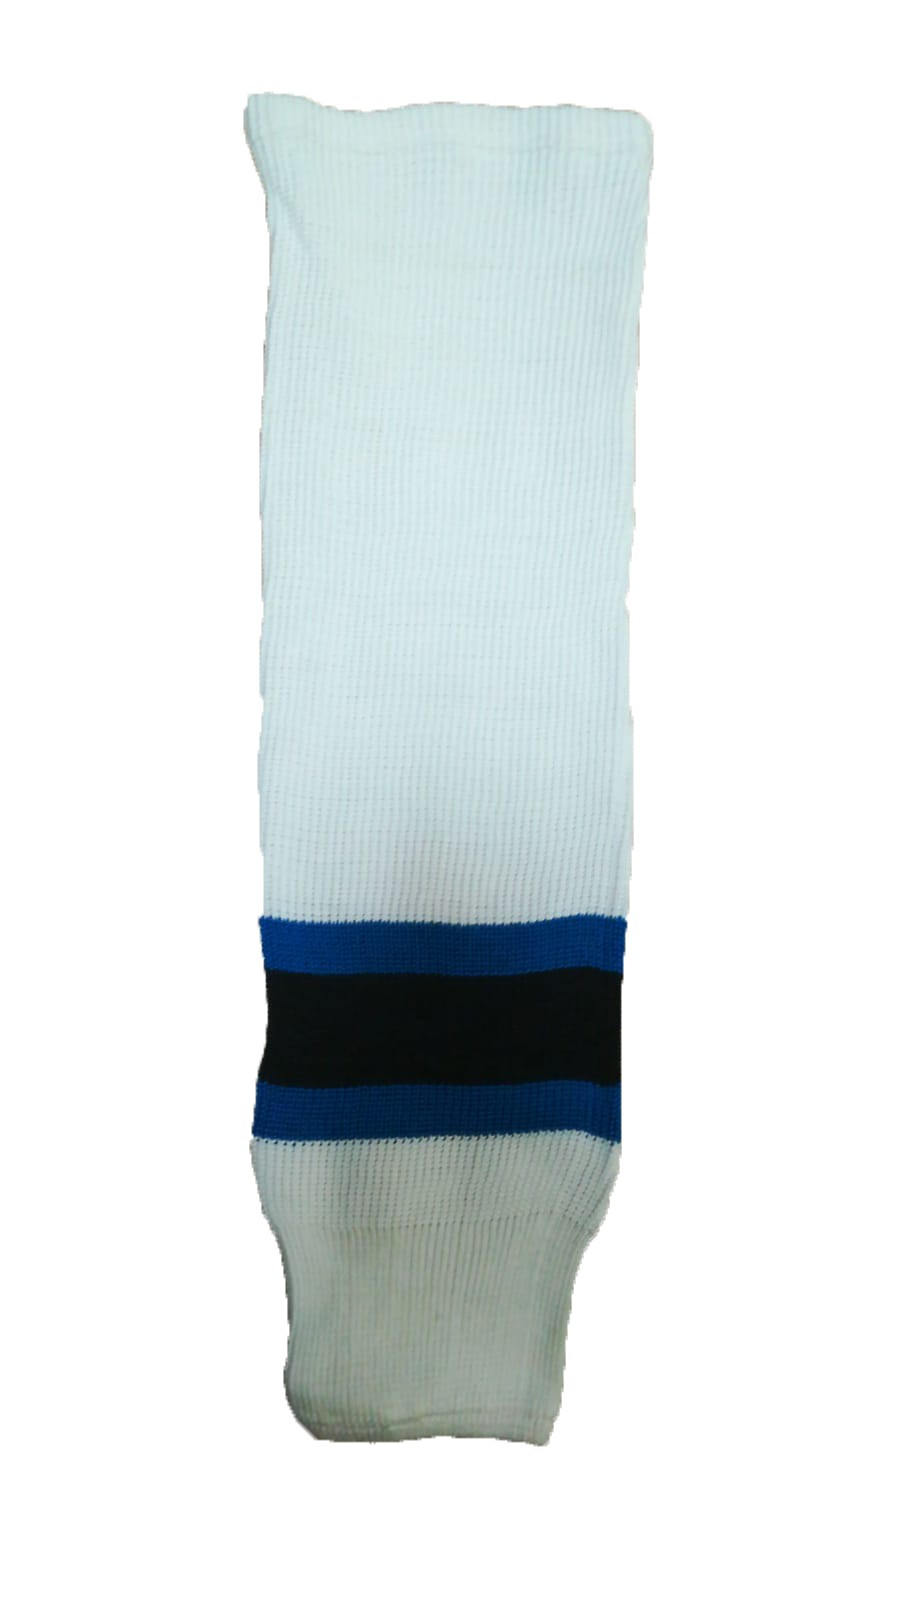 HOKEJAM.LV Knit Adult Hockey Socks#024